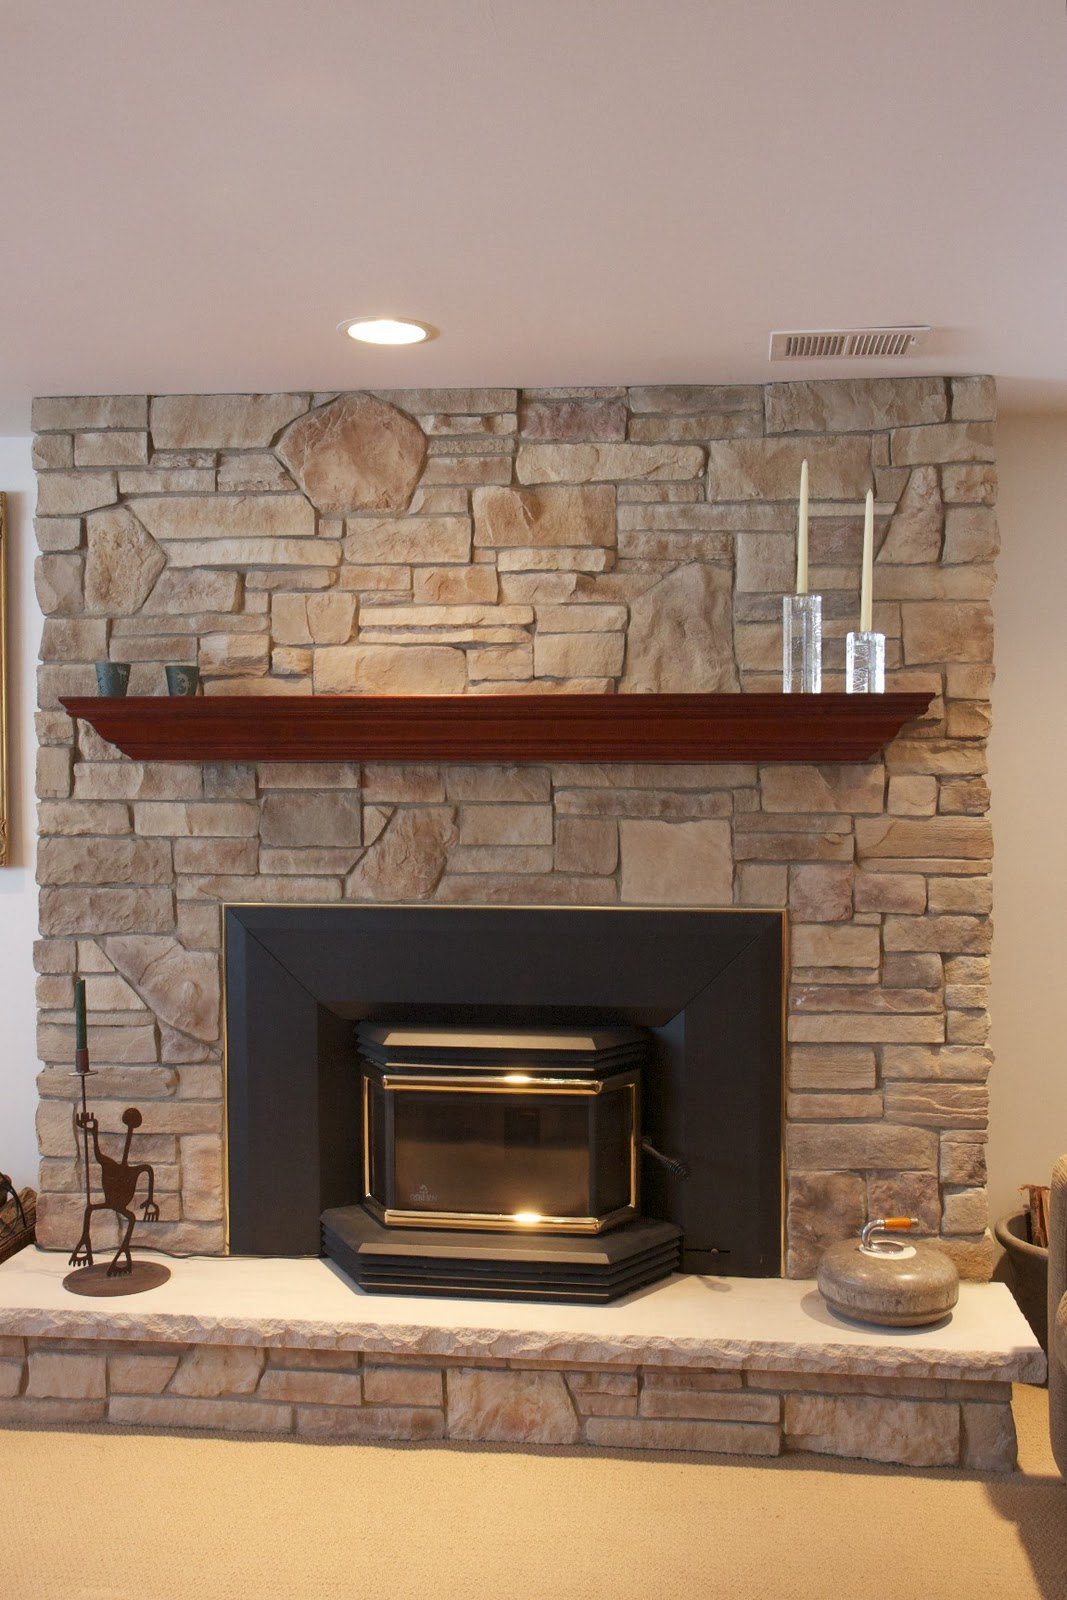 North star stone stone fireplaces stone exteriors - Stone and wood fireplace ...